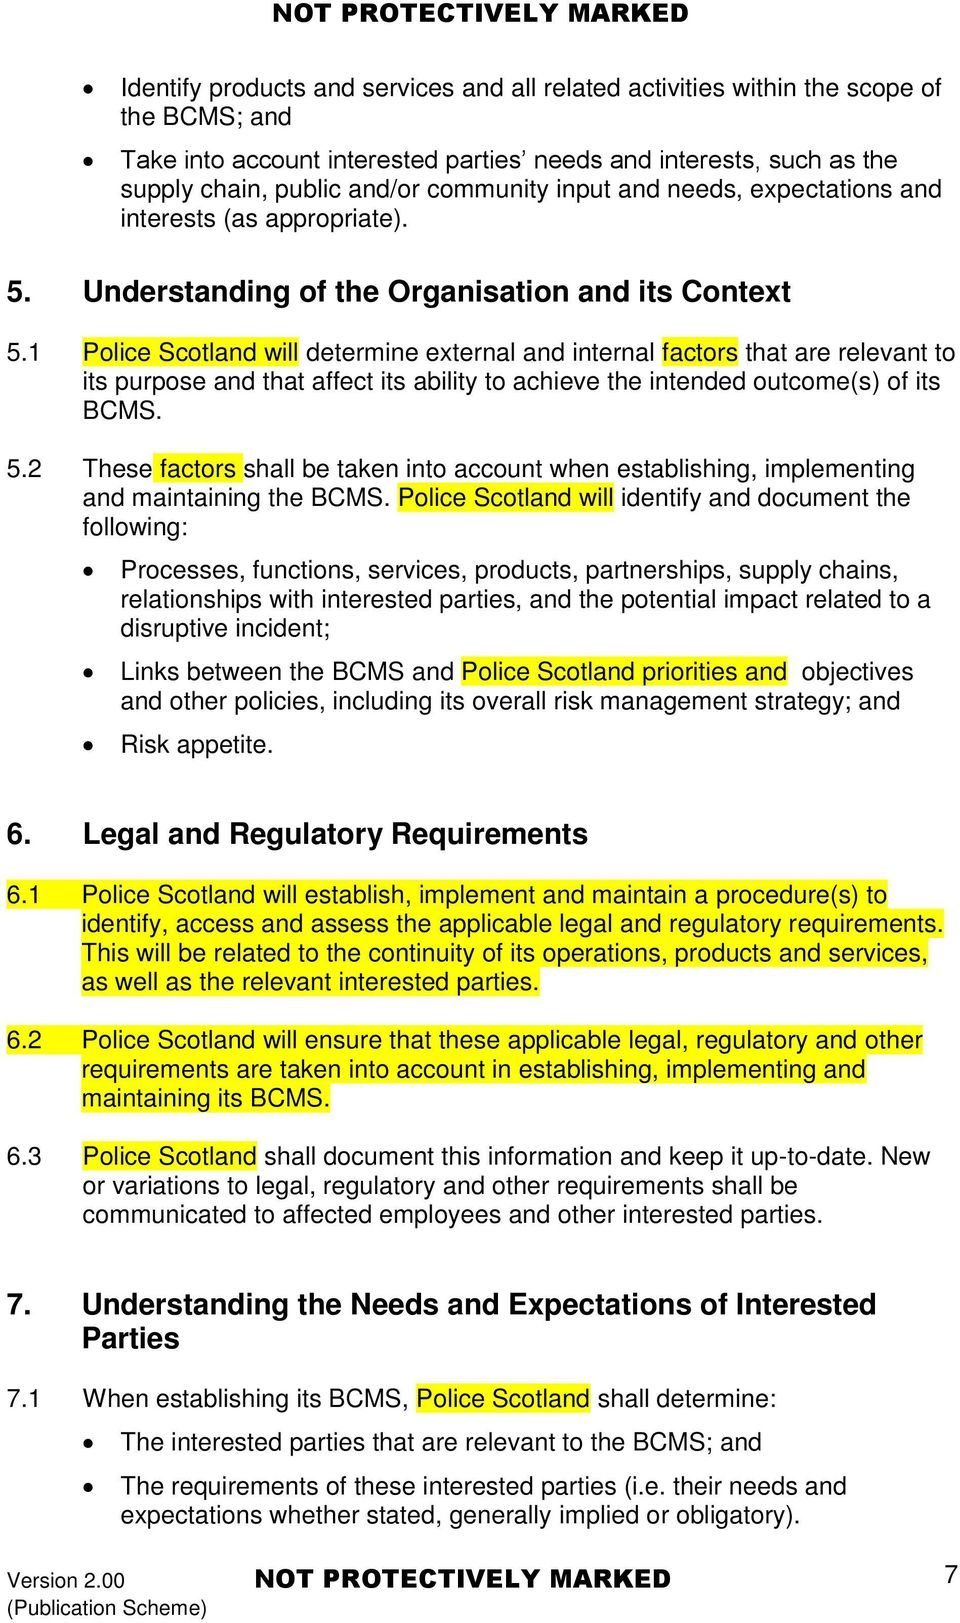 1 Police Scotland will determine external and internal factors that are relevant to its purpose and that affect its ability to achieve the intended outcome(s) of its BCMS. 5.